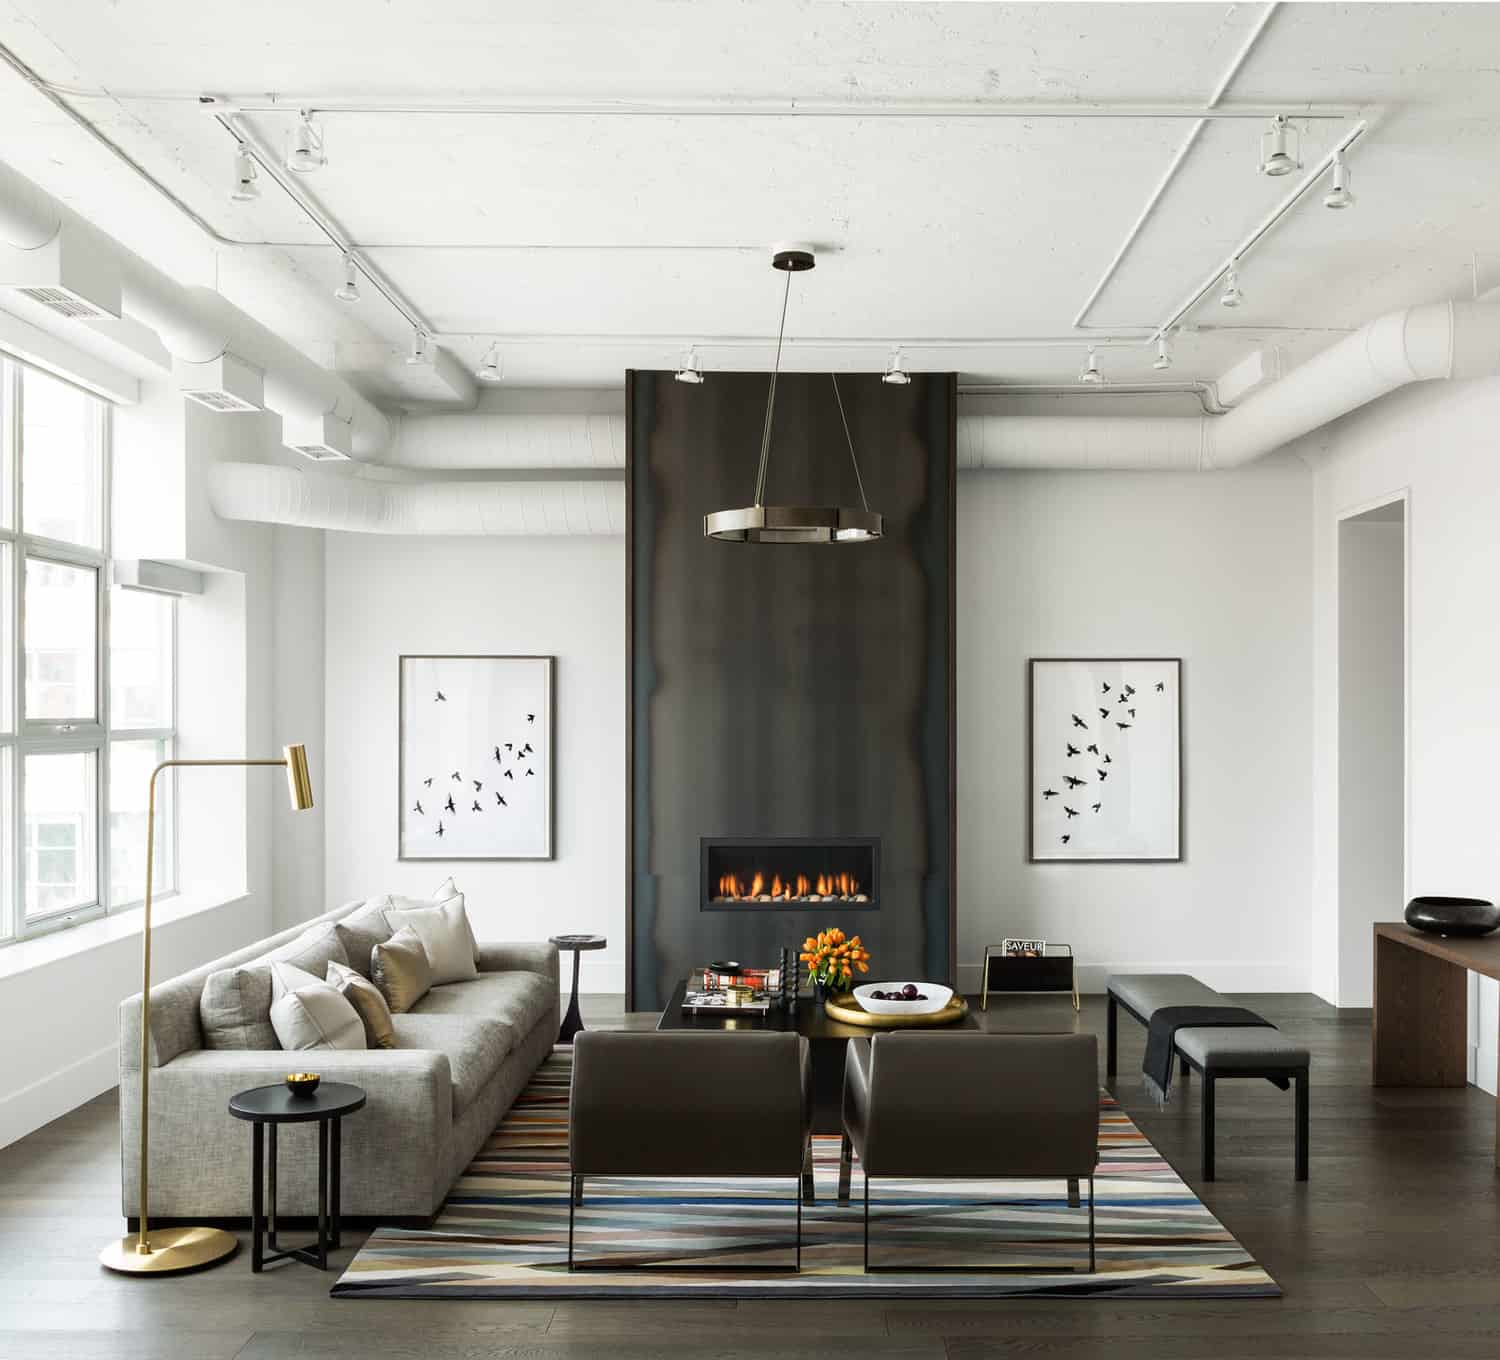 Toronto merchandise warehouse converted to modern industrial loft